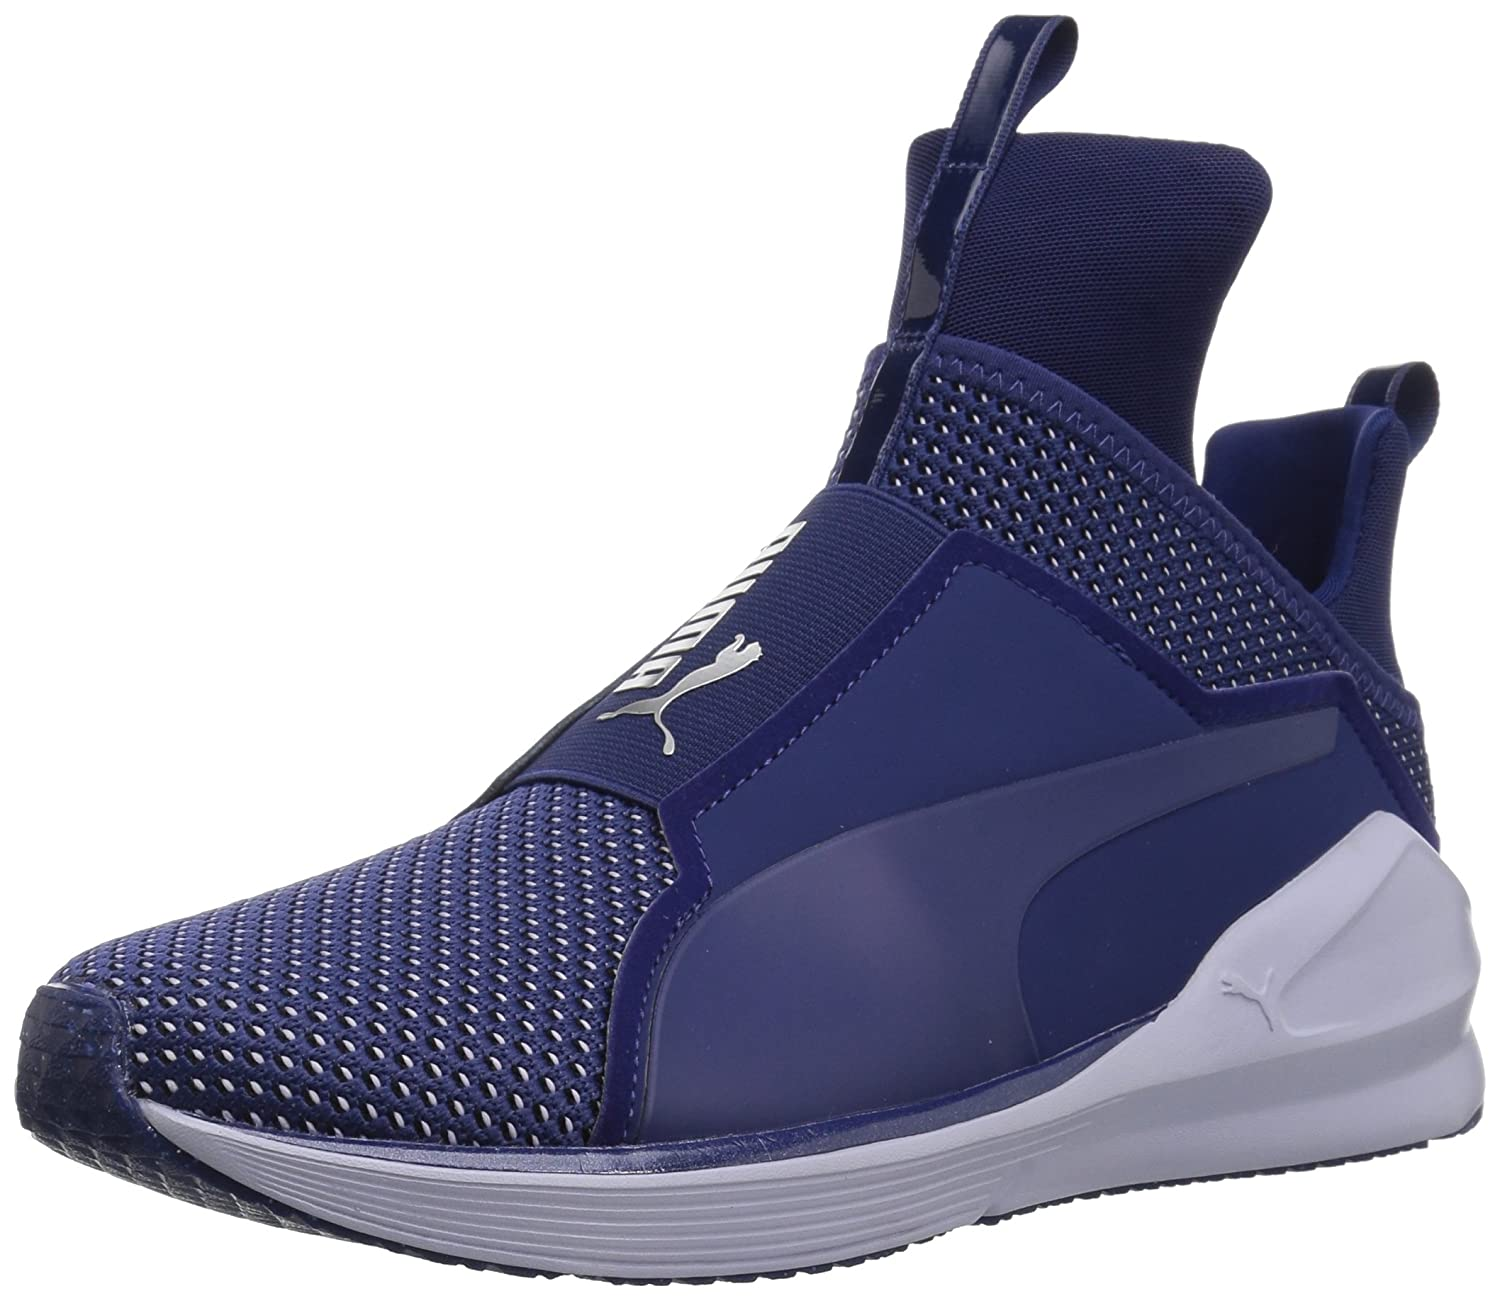 PUMA Women's Fierce Velvet Rope Wn Sneaker B06XWHWDHK 10 M US|Blue Depths-icelandic Blue